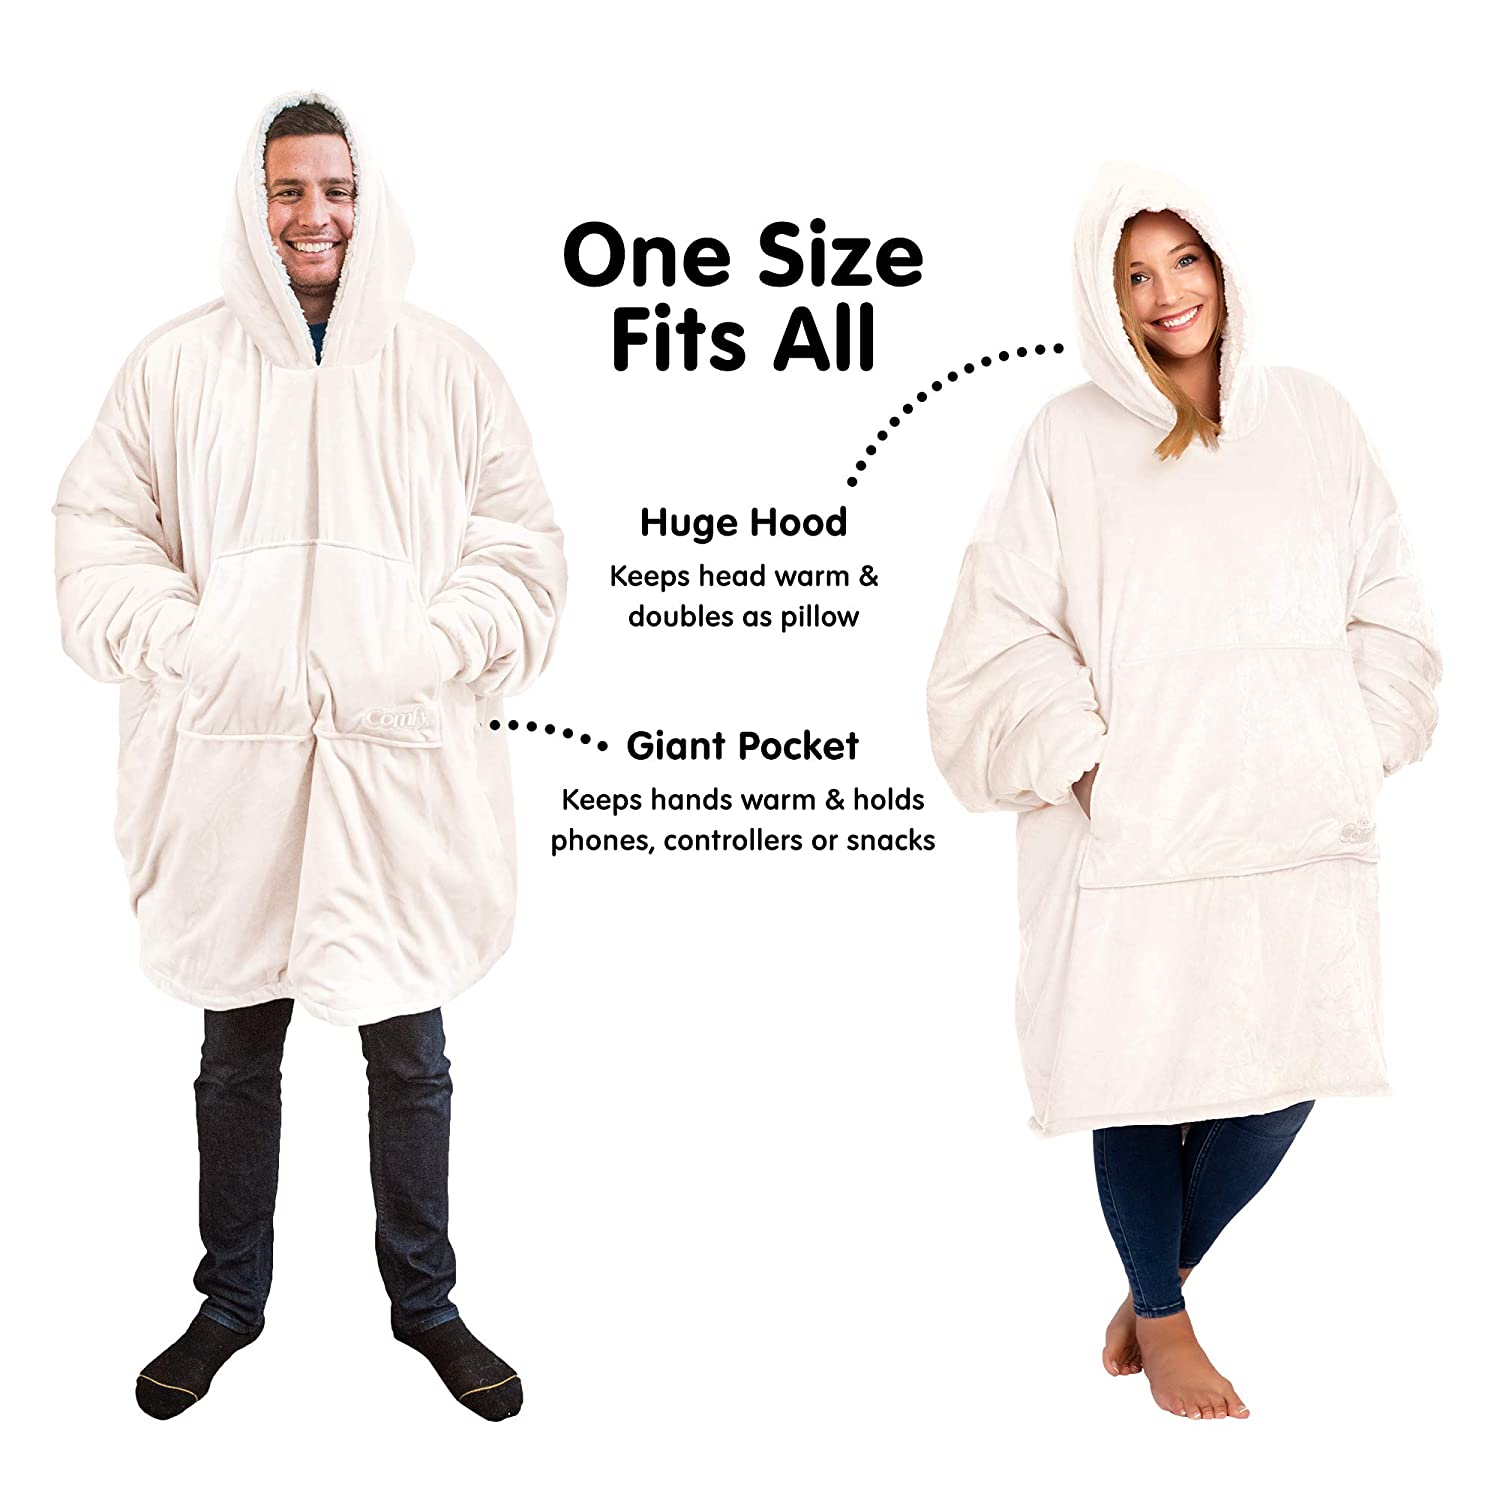 Thats a Sweatshirt The Comfy The Blanket Soft Snuggly And Comfortable Blanket Sweatshirt Originally Featured on Shark Tank One Size Fits Most